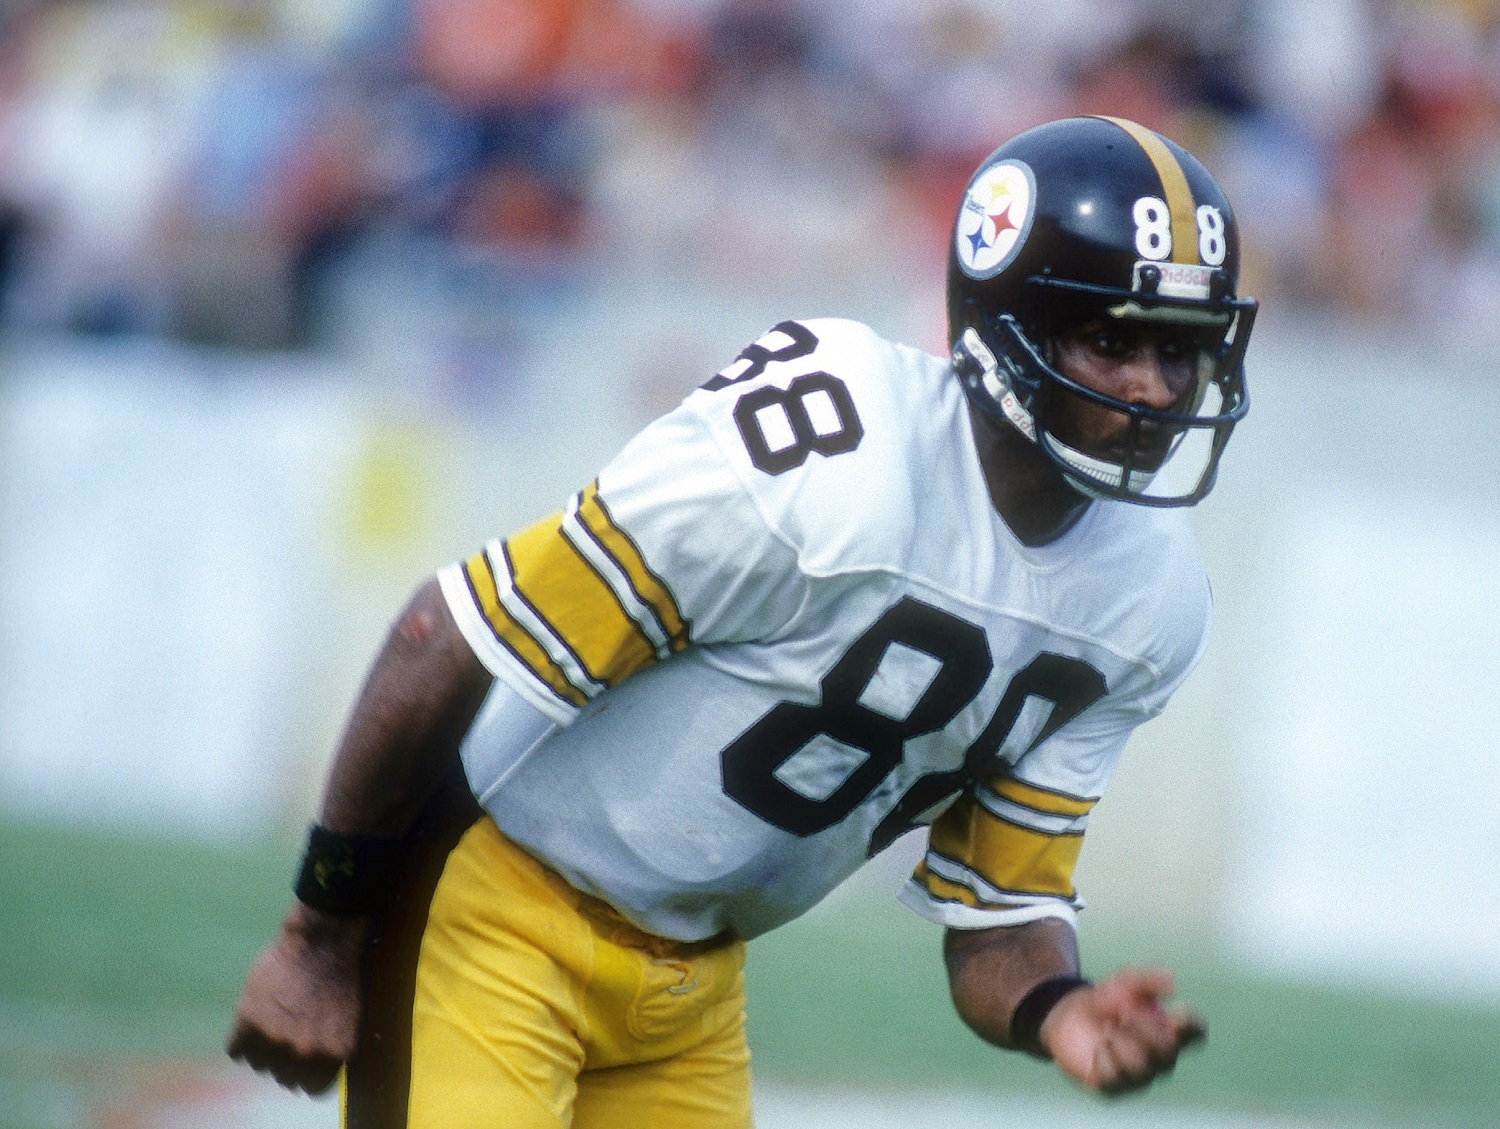 The Racism Lynn Swann Faced as a Teen Forever Altered His Hall of Fame Career